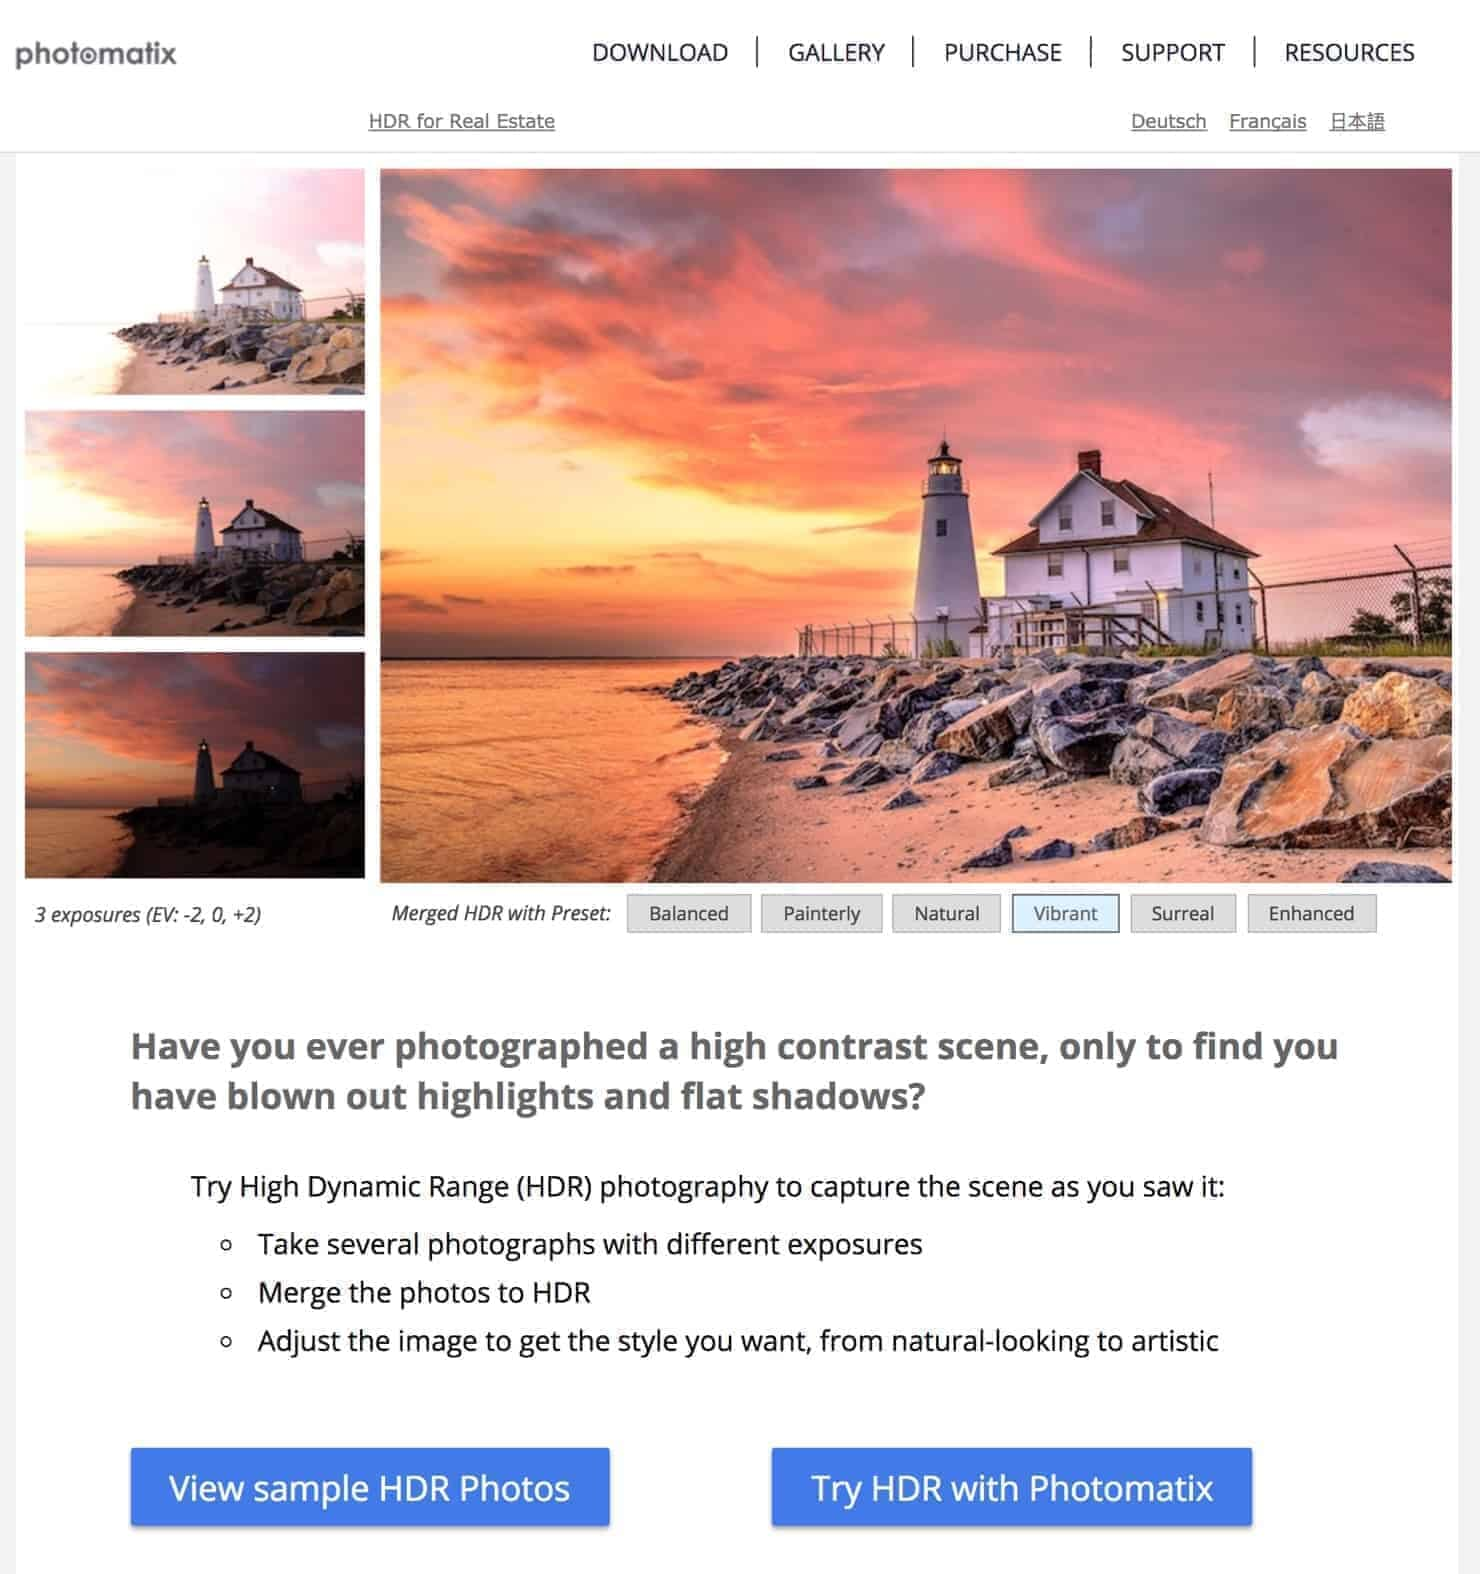 Best HDR Software 2019 (Top 4 Picks for Mac, Windows & Free)